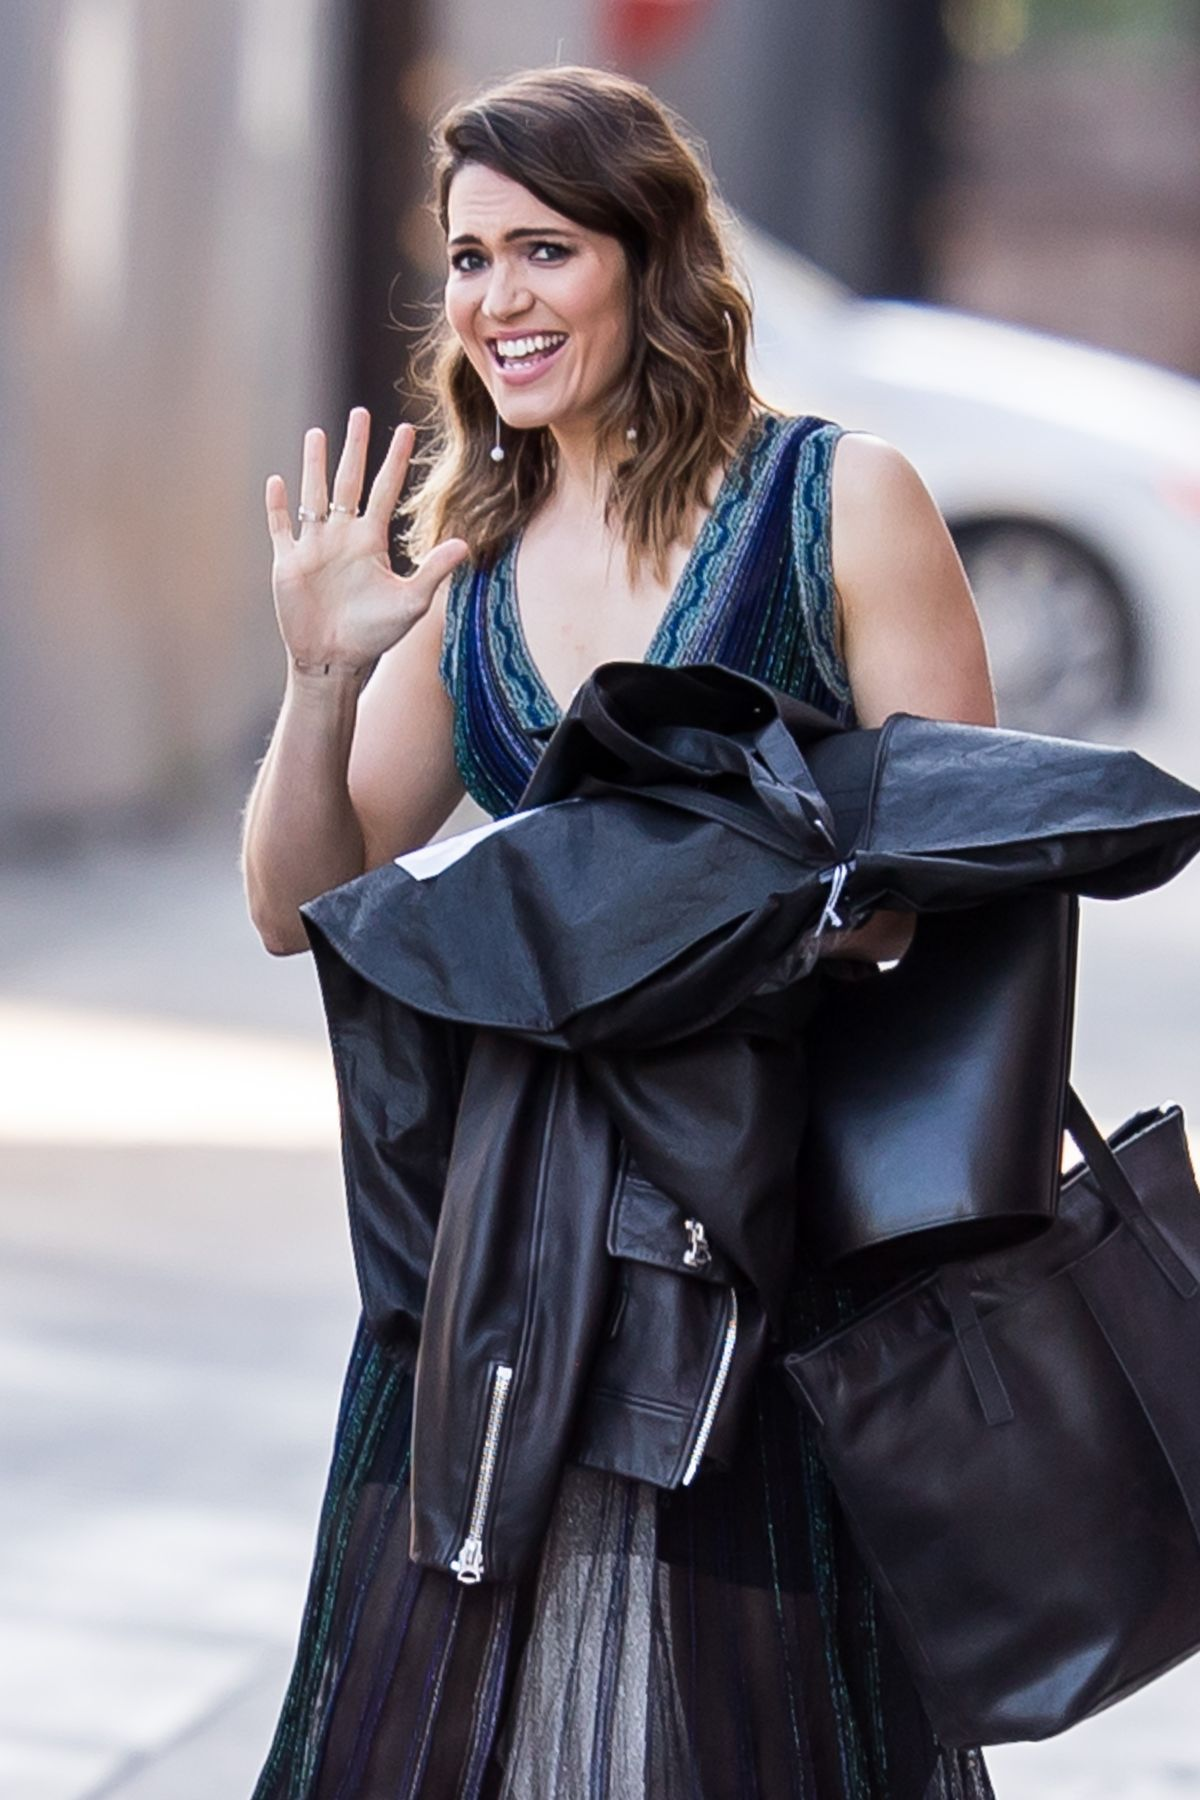 Mandy Moore At 'Jimmy Kimmel Live' in Hollywood   mandy-moore-at-jimmy-kimmel-live-in-hollywood-_4